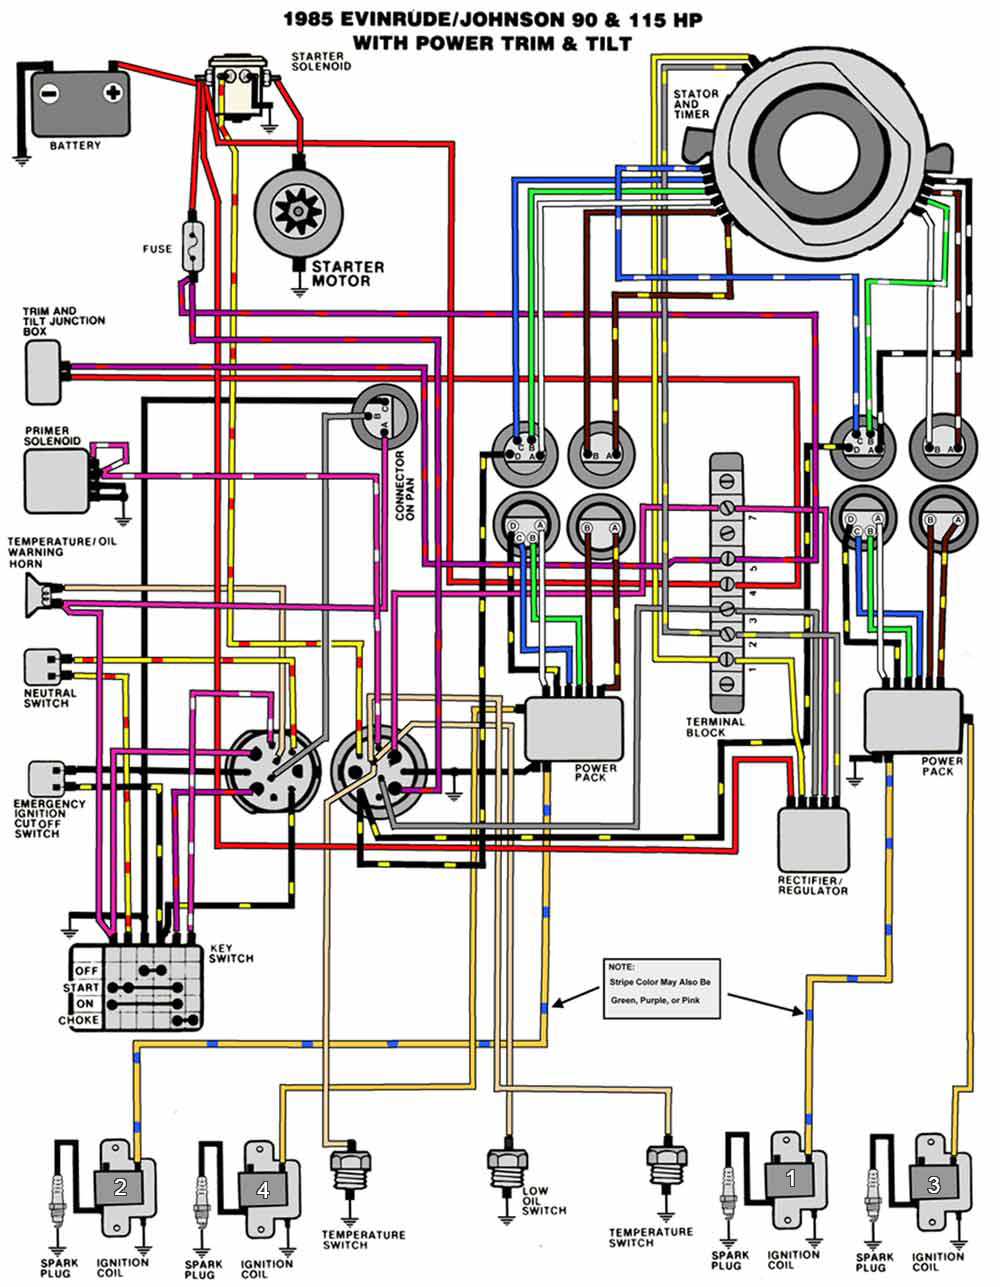 Wiring Diagram For A 1971 Mercury 115 Just Wiring Data Force Outboard  Wiring Diagram Mariner Outboard Motor Wiring Diagram